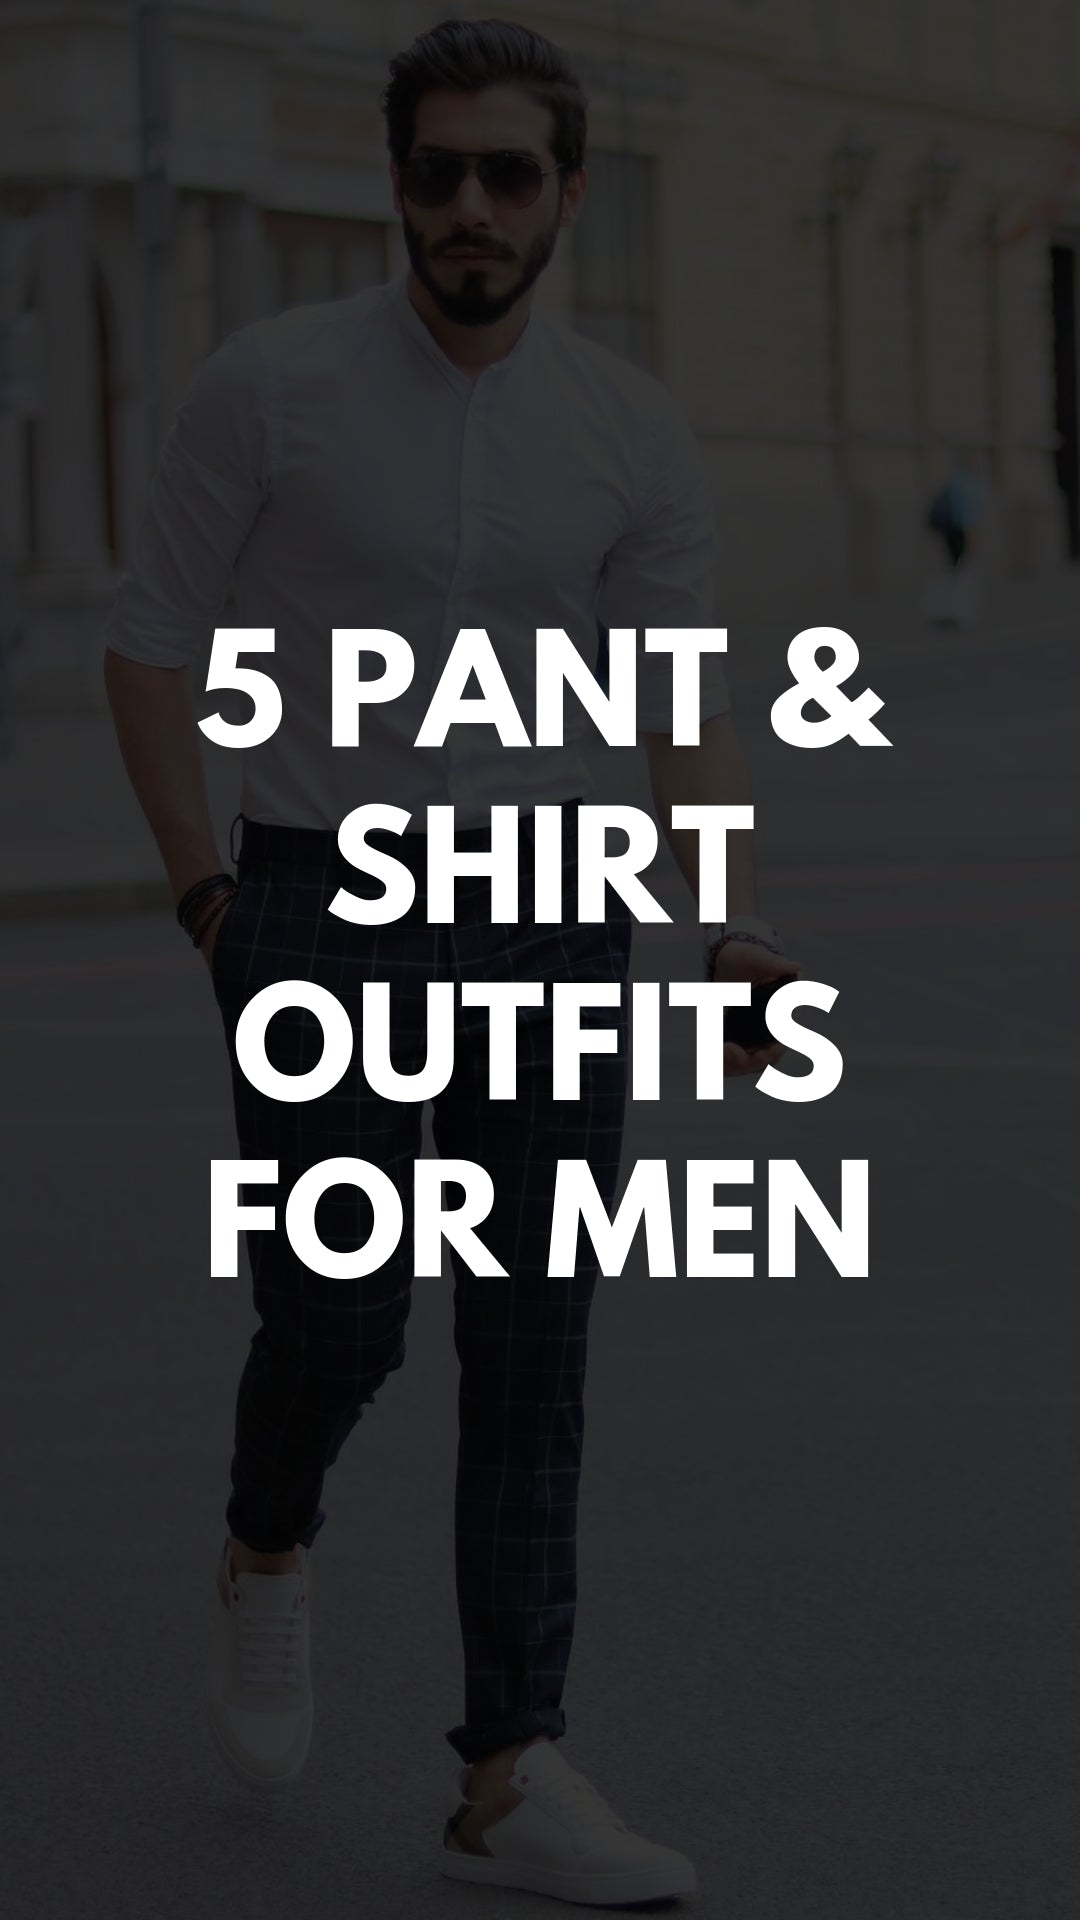 5 Smart Formal Outfits For Men #smart #formal #outfits #mensfashion #streetstyle